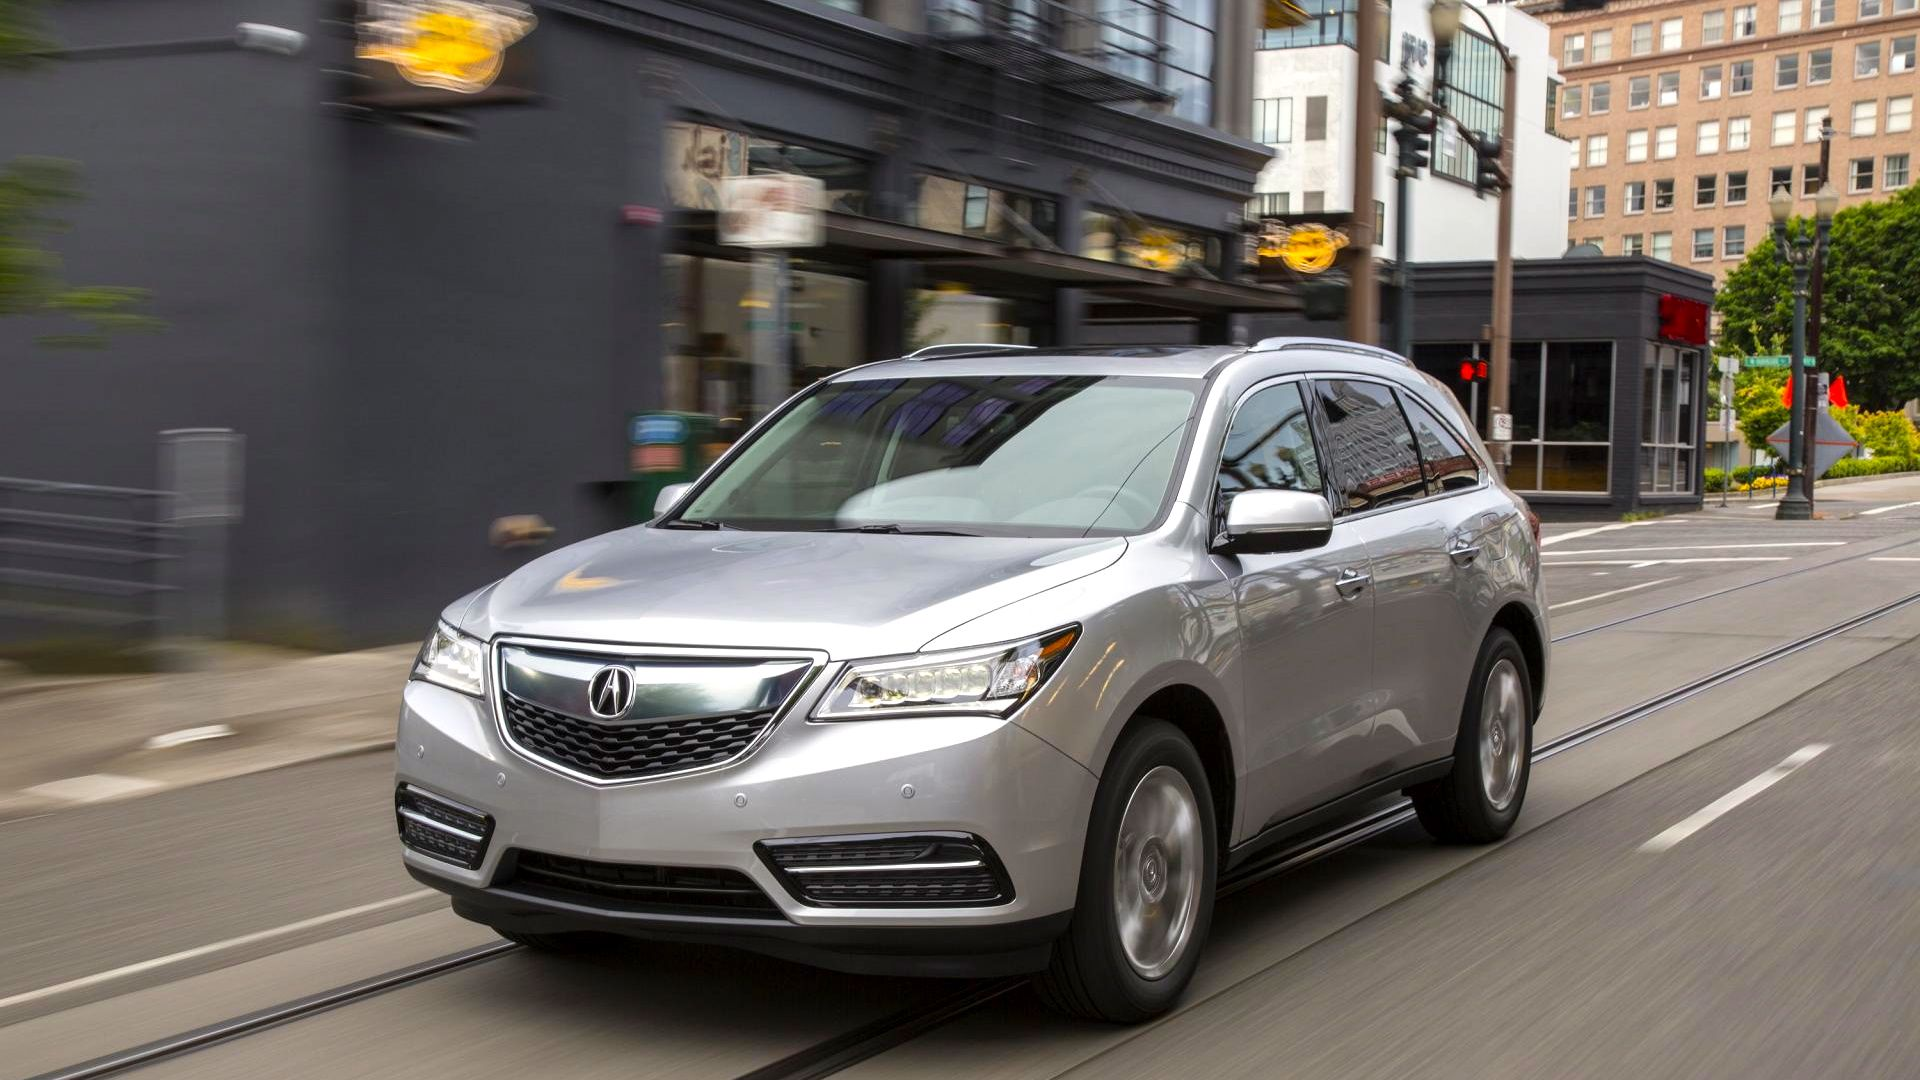 2015 Acura MDX gray rear to side view exterior driving sun